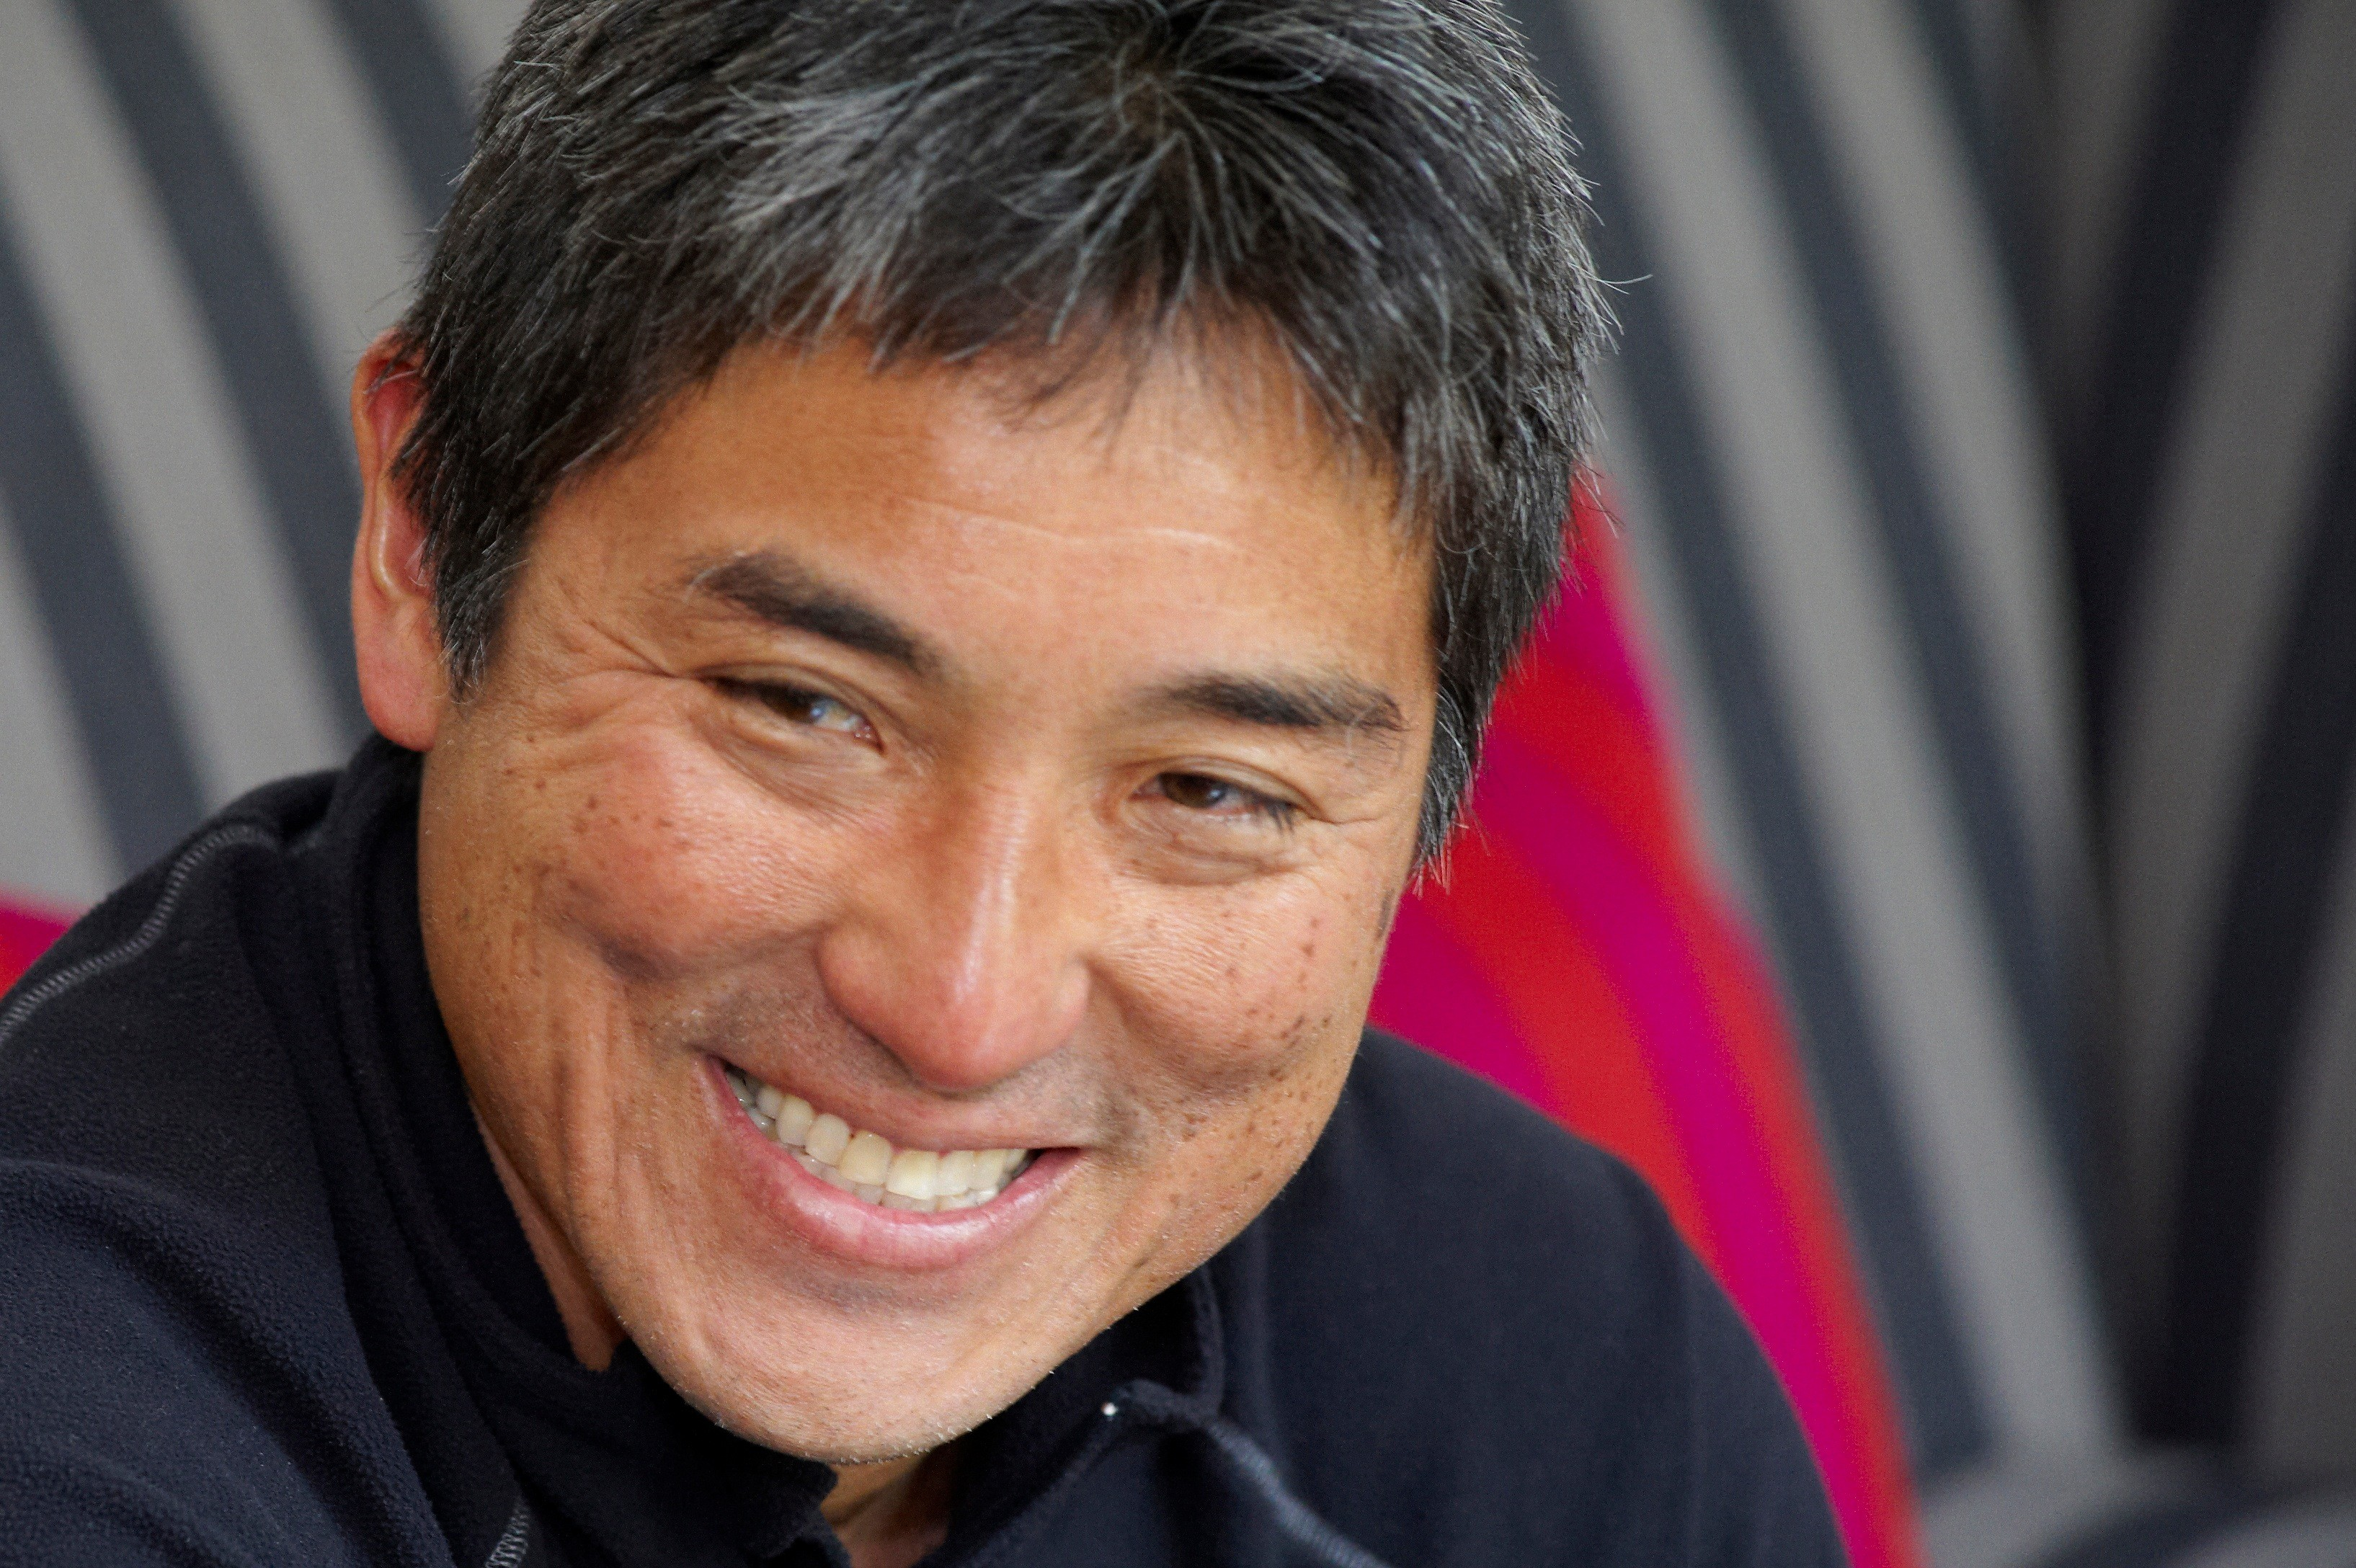 Guy Kawasaki on evangelism and green revolutionaries